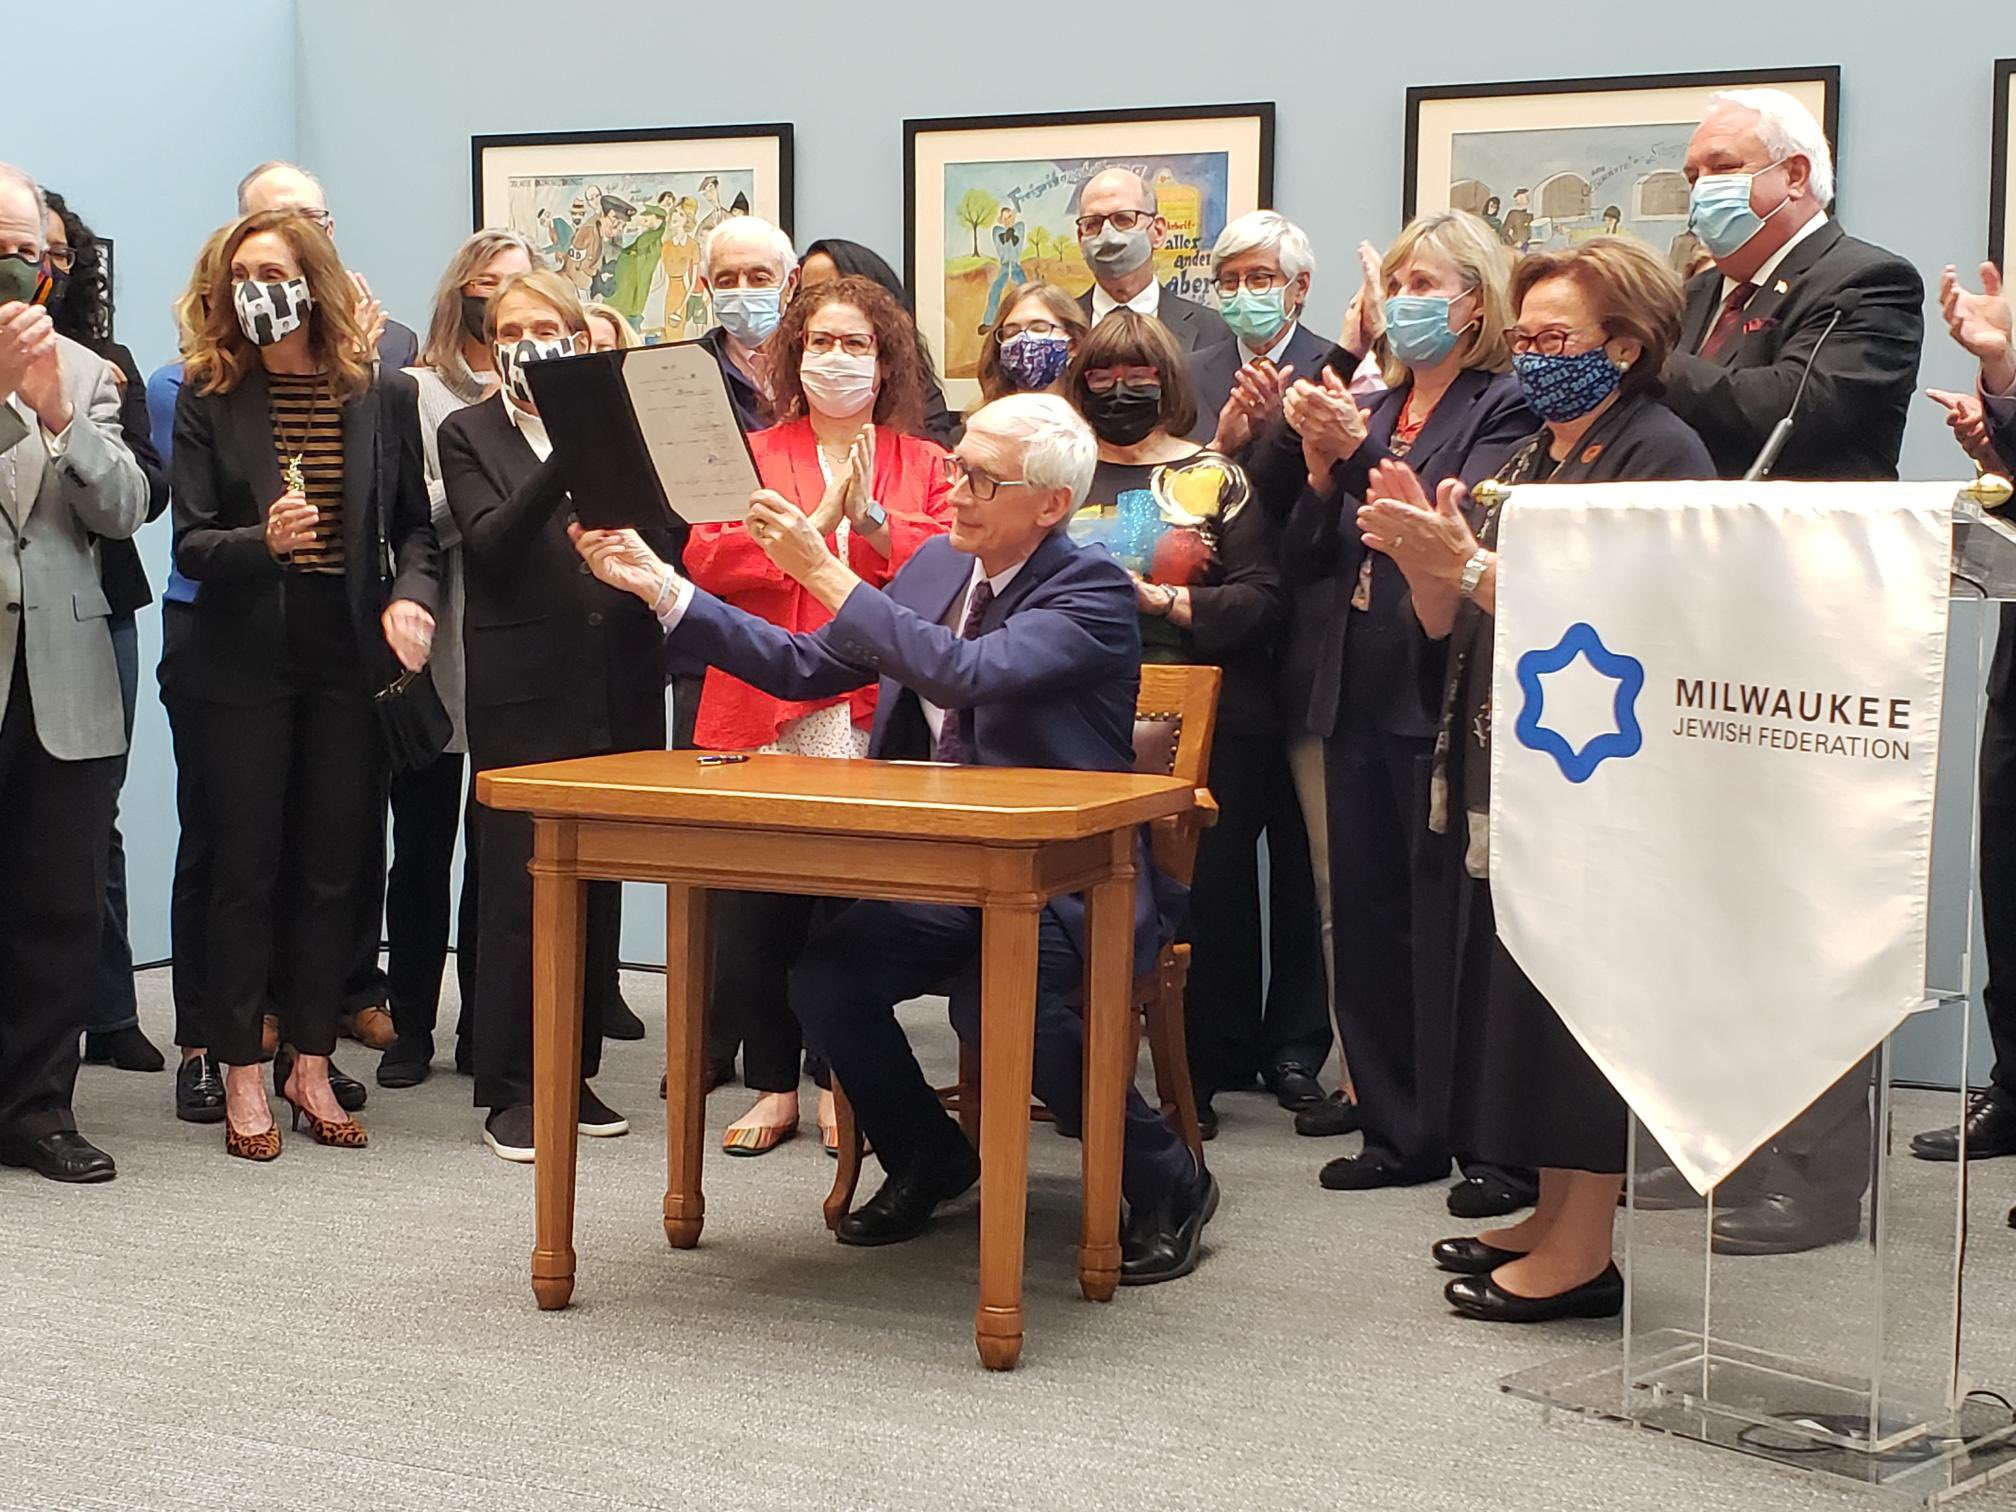 Gov. Evers signs legislation requiring Holocaust education in Wisconsin Schools on Wednesday in Milwaukee.